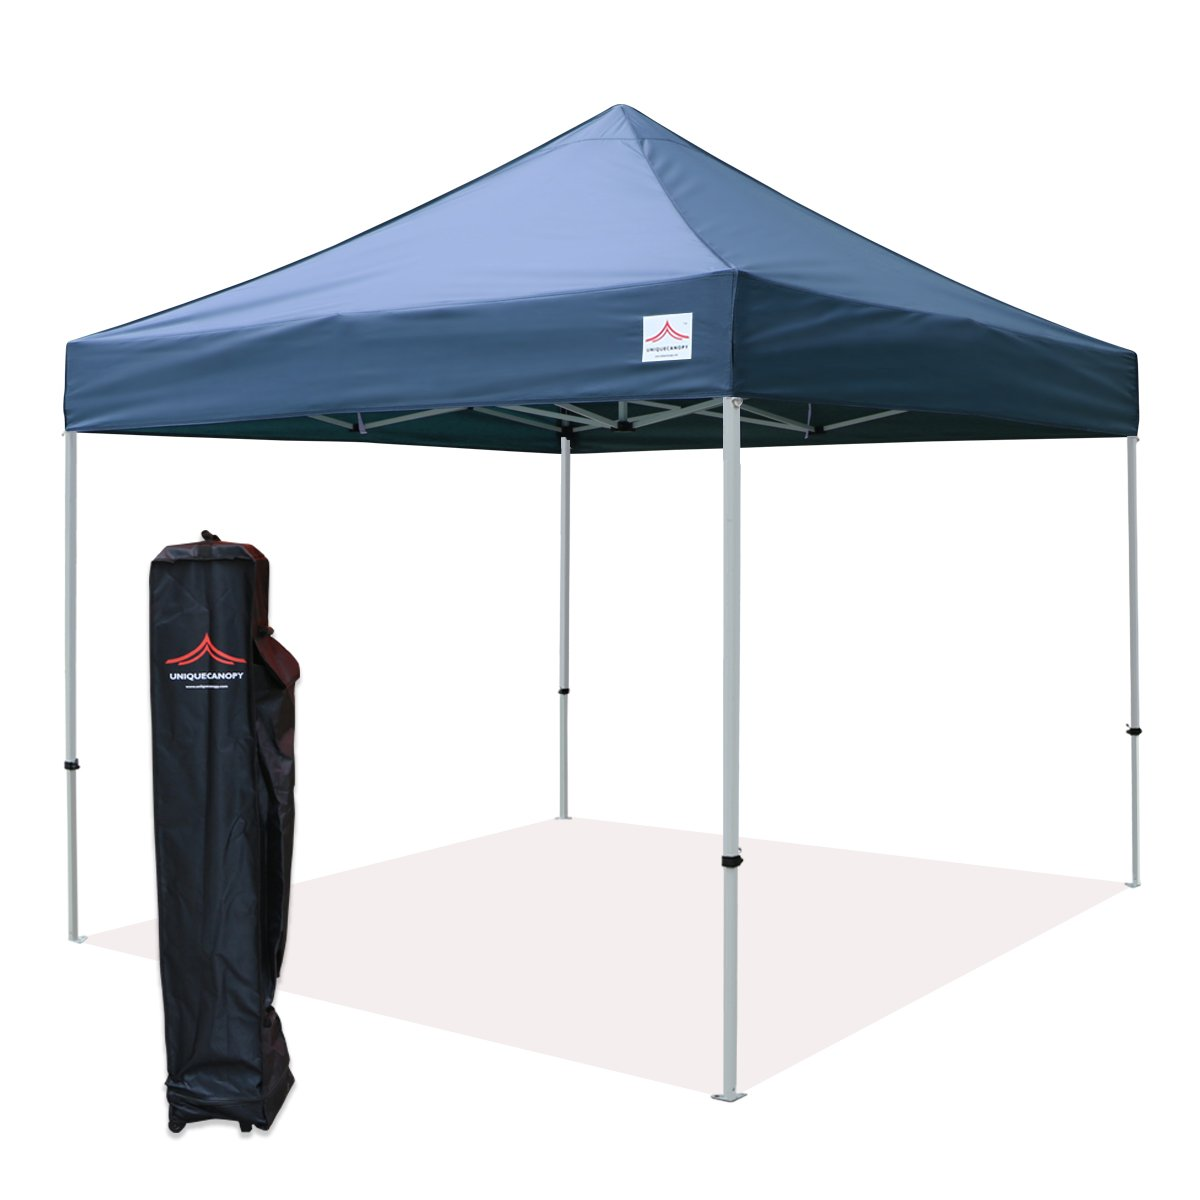 UNIQUECANOPY 10x10 Ez Pop up Canopy Tents for Parties Outdoor Portable Instant Folded Commercial Popup Shelter, with Wheeled Carrying Bag Navy Blue